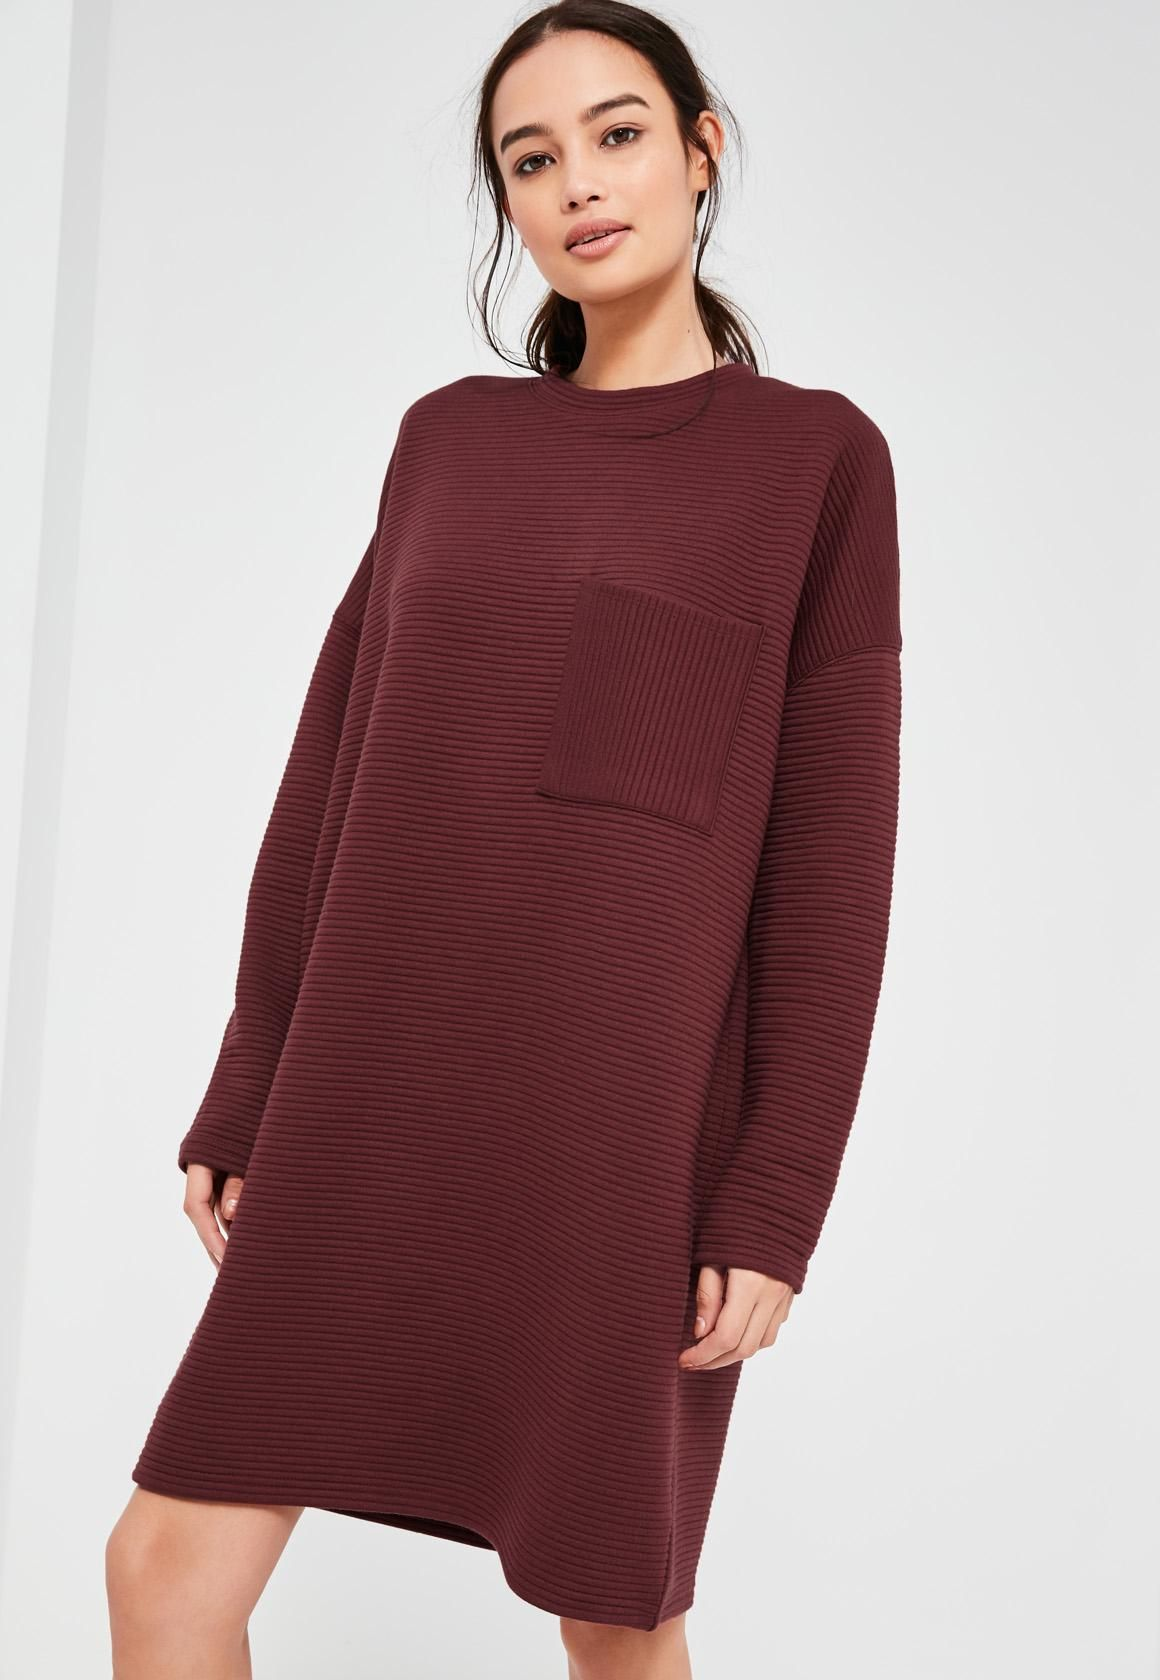 Burgundy Ribbed Pocket Sweater Dress | Missguided, Burgundy and ...